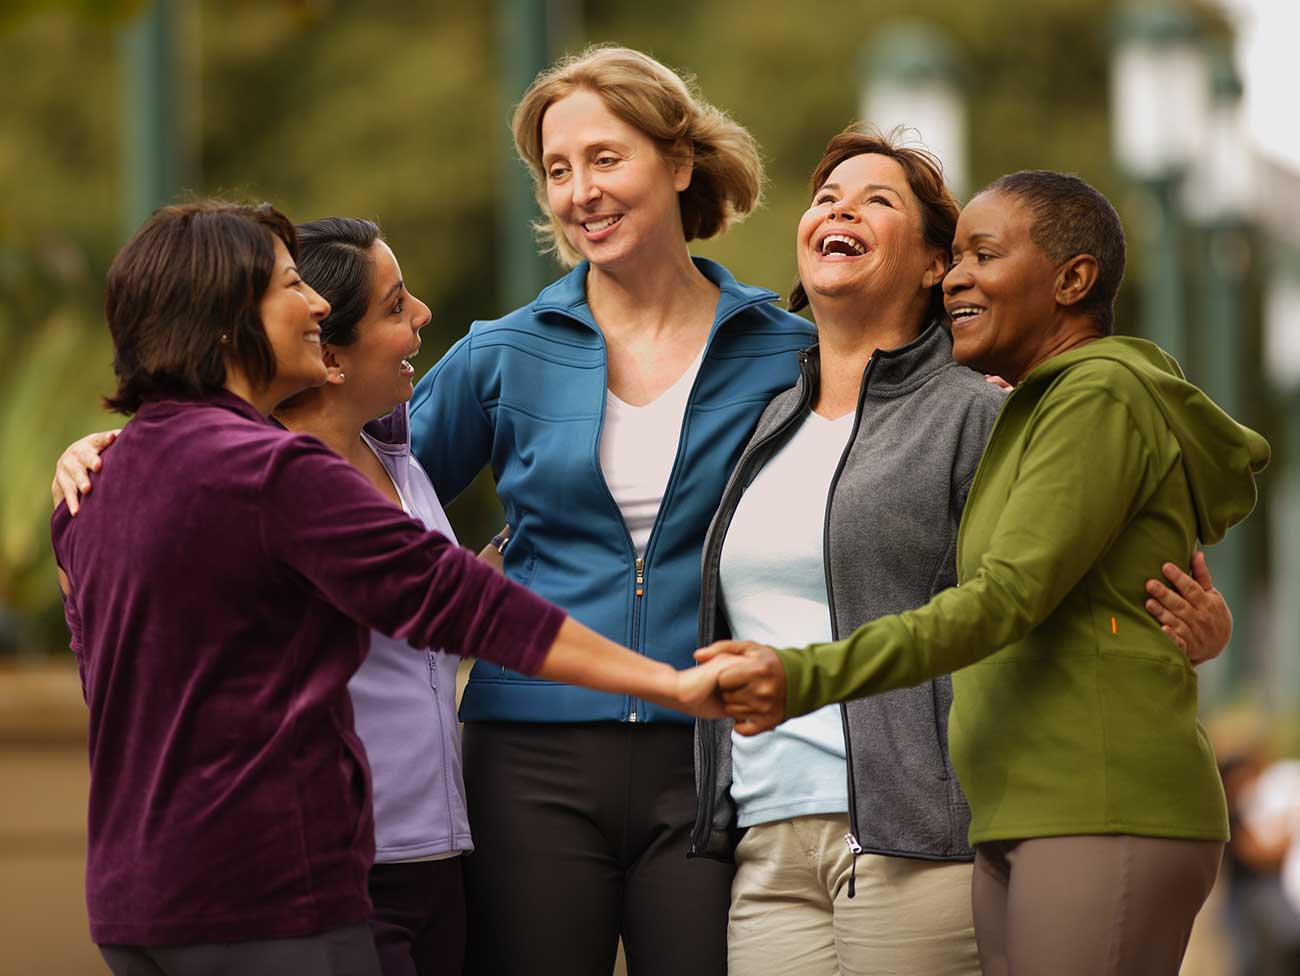 Group of 5 laughing women, standing in a circle with hands joined.